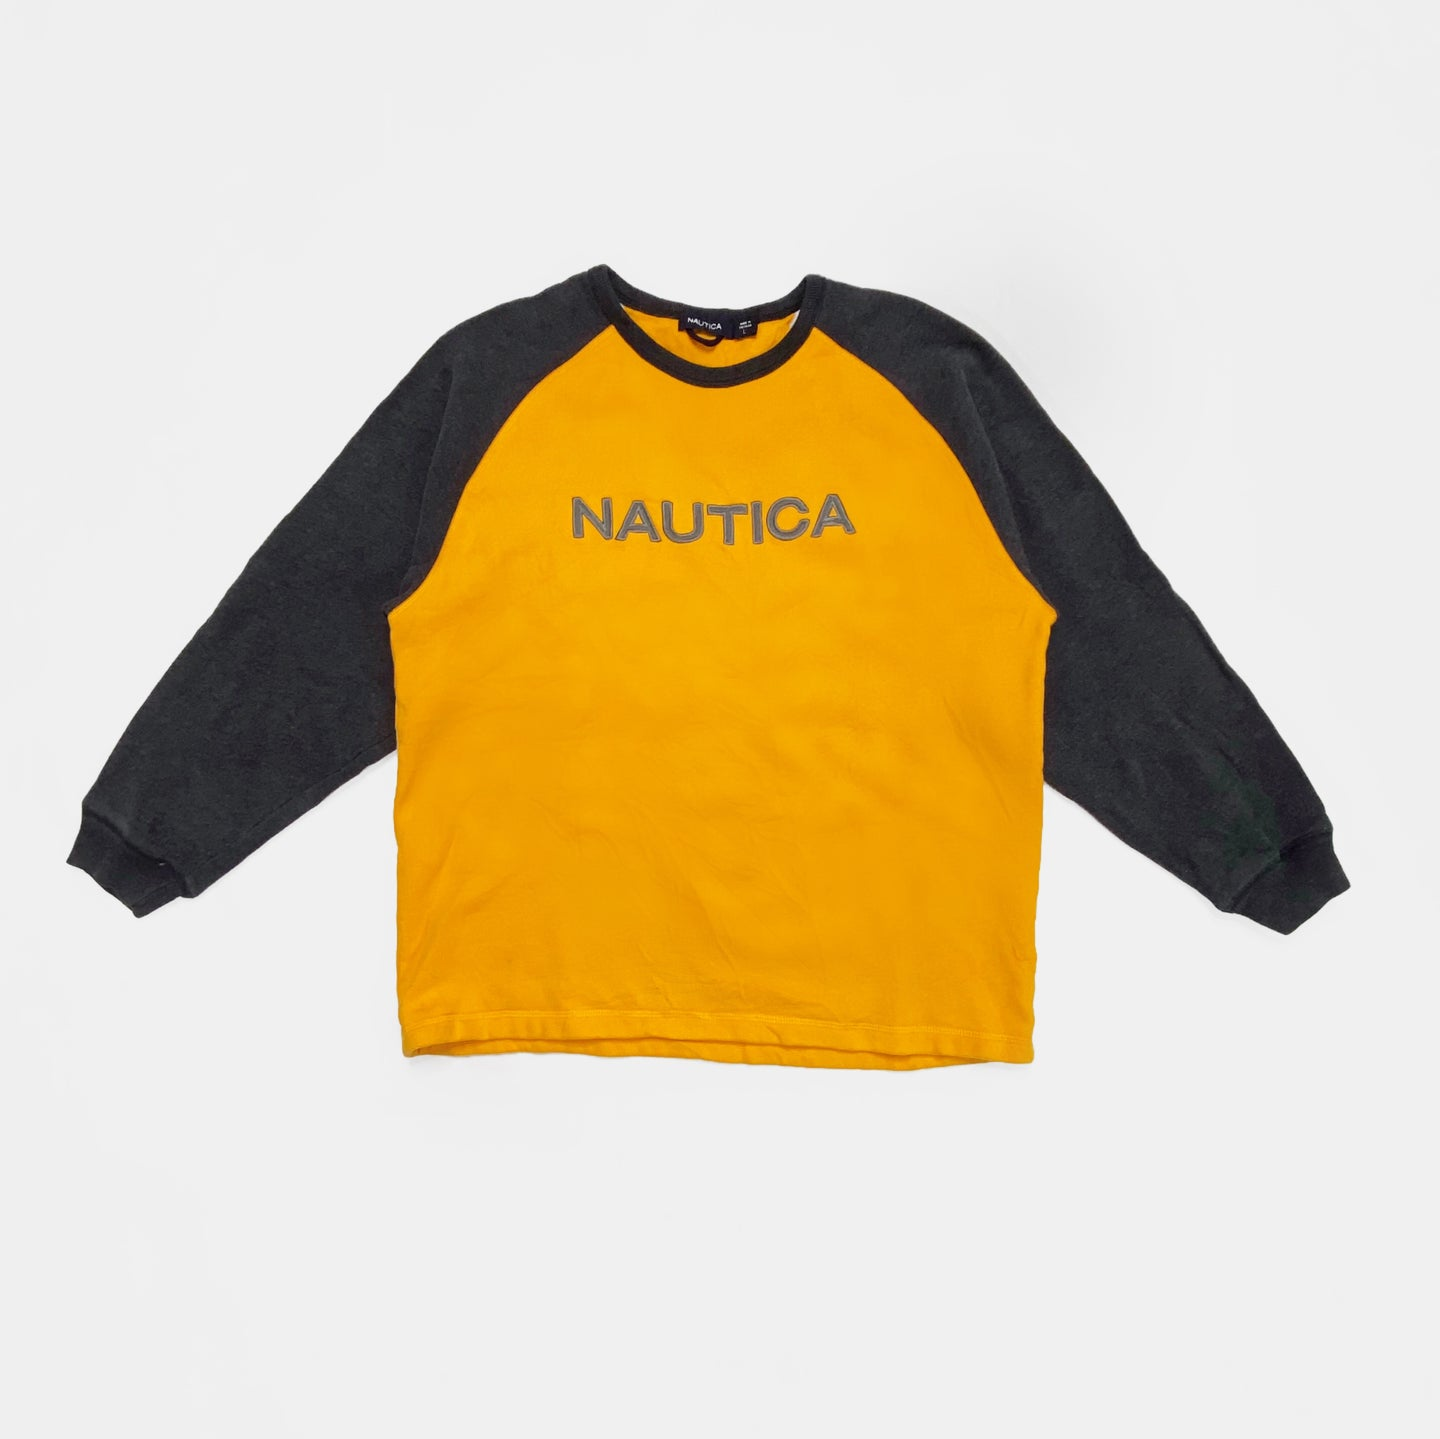 NAUTICA CREWNECK SWEATSHIRT-BASEMENT SIX